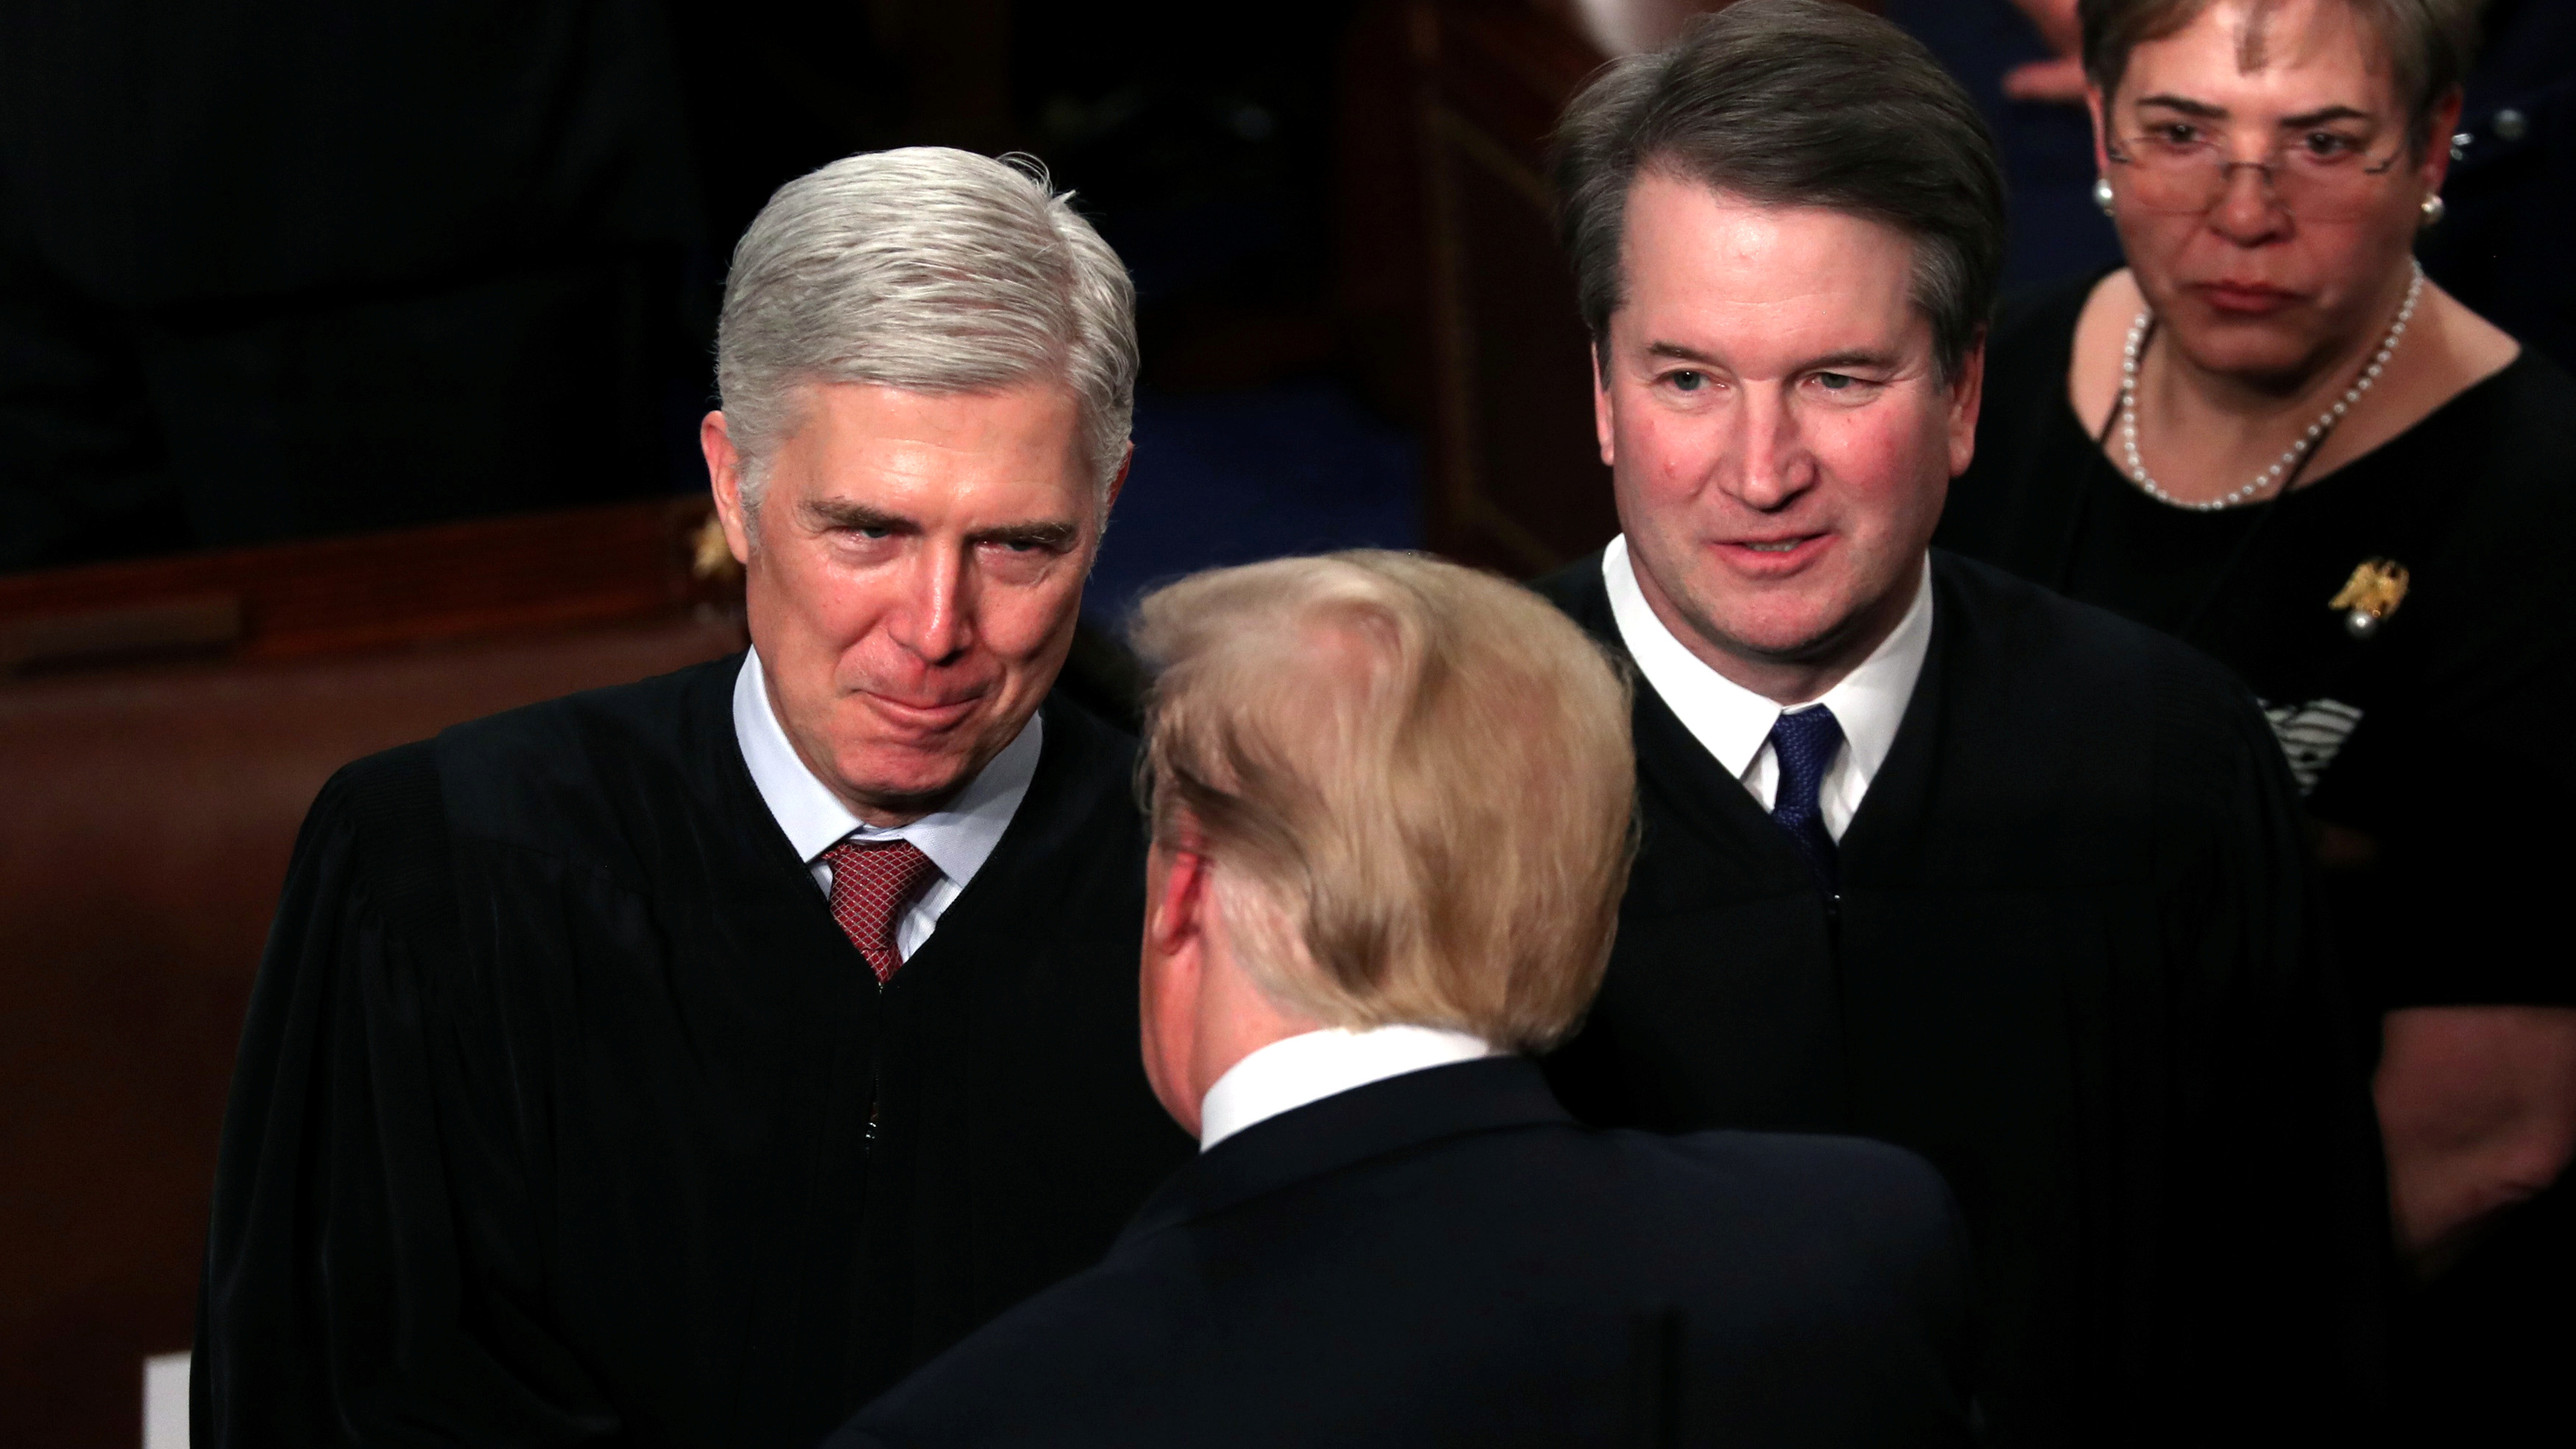 Trump and his previous two Supreme Court nominees.